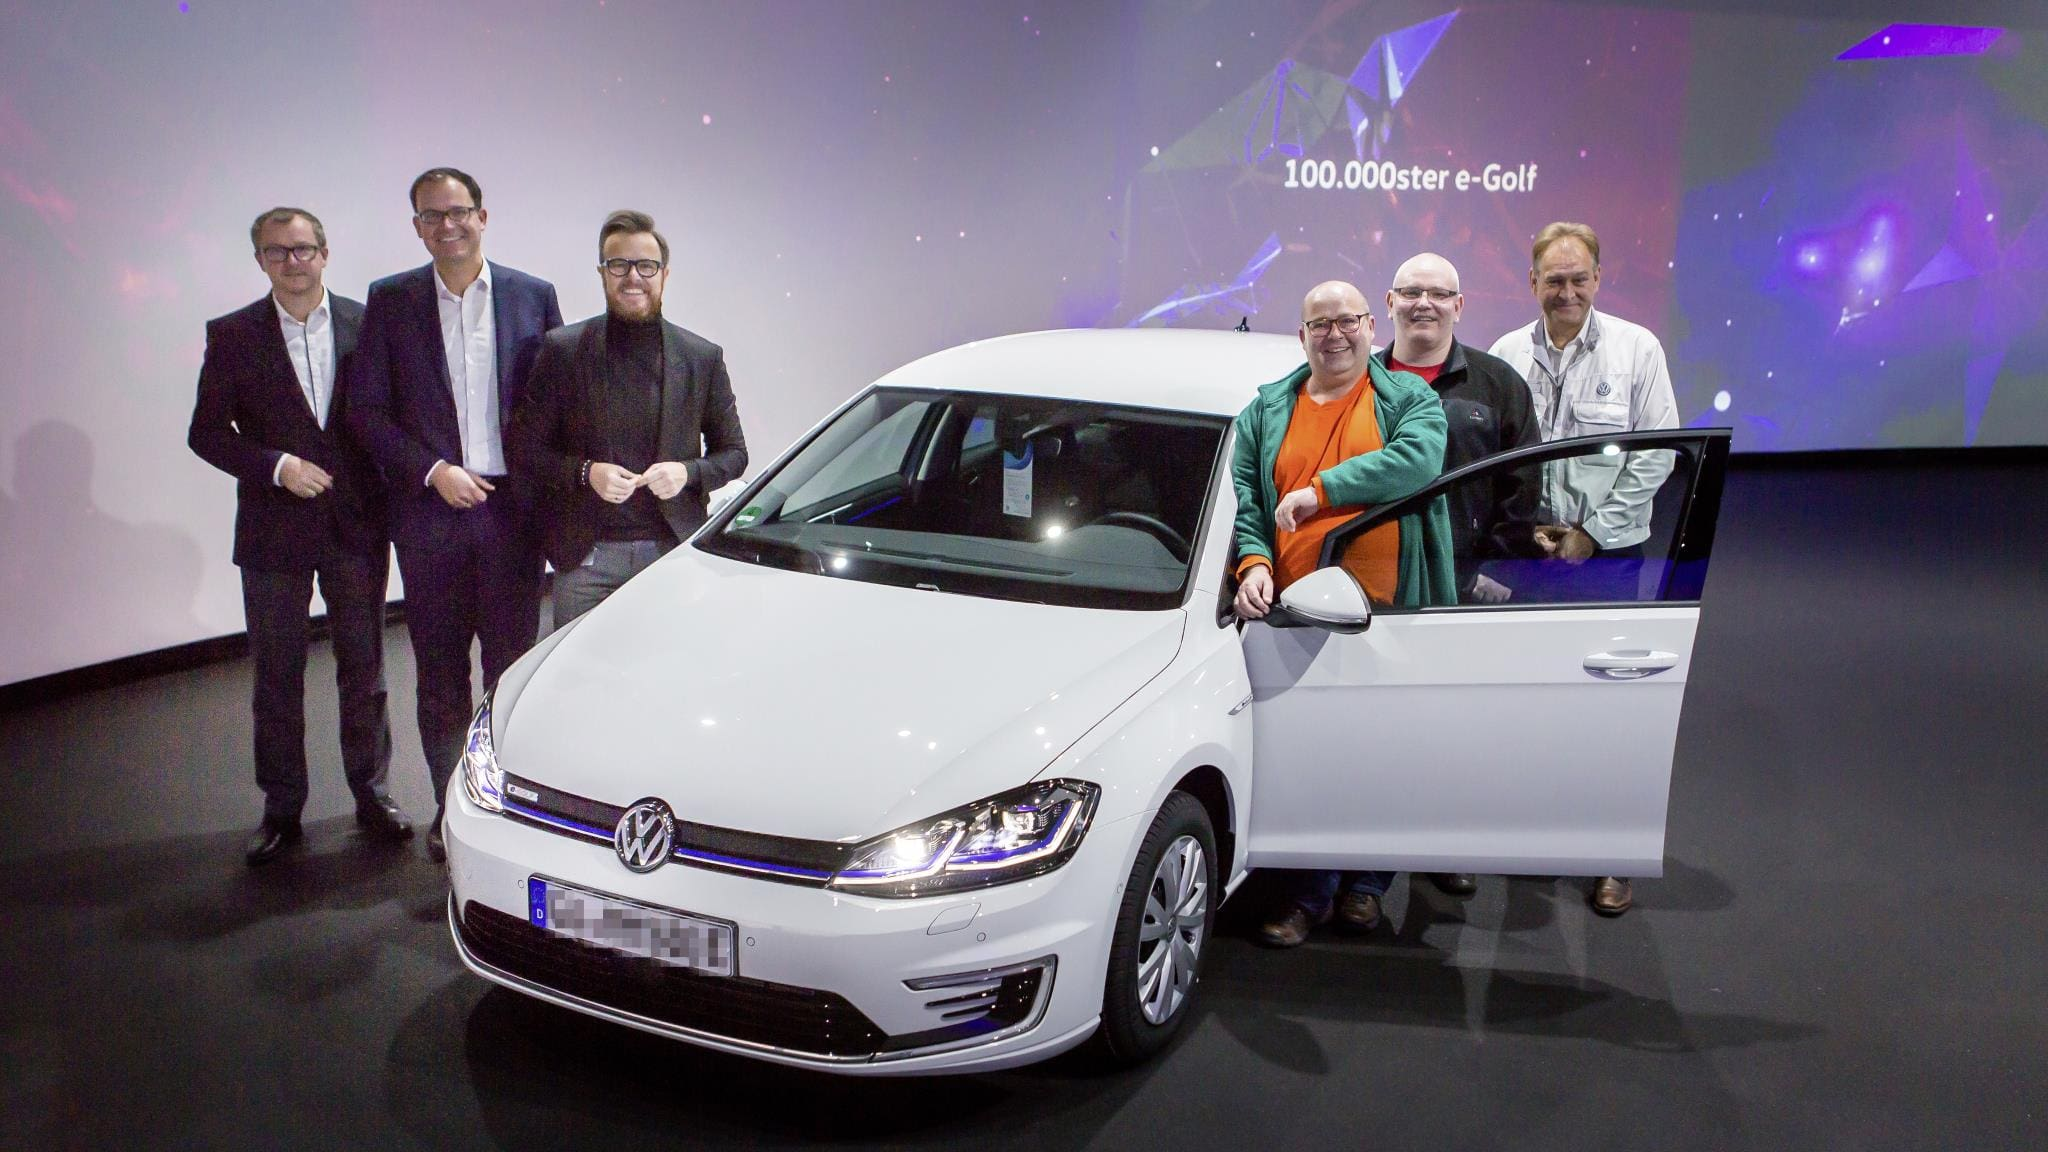 VW rolls out 100,000th e-Golf